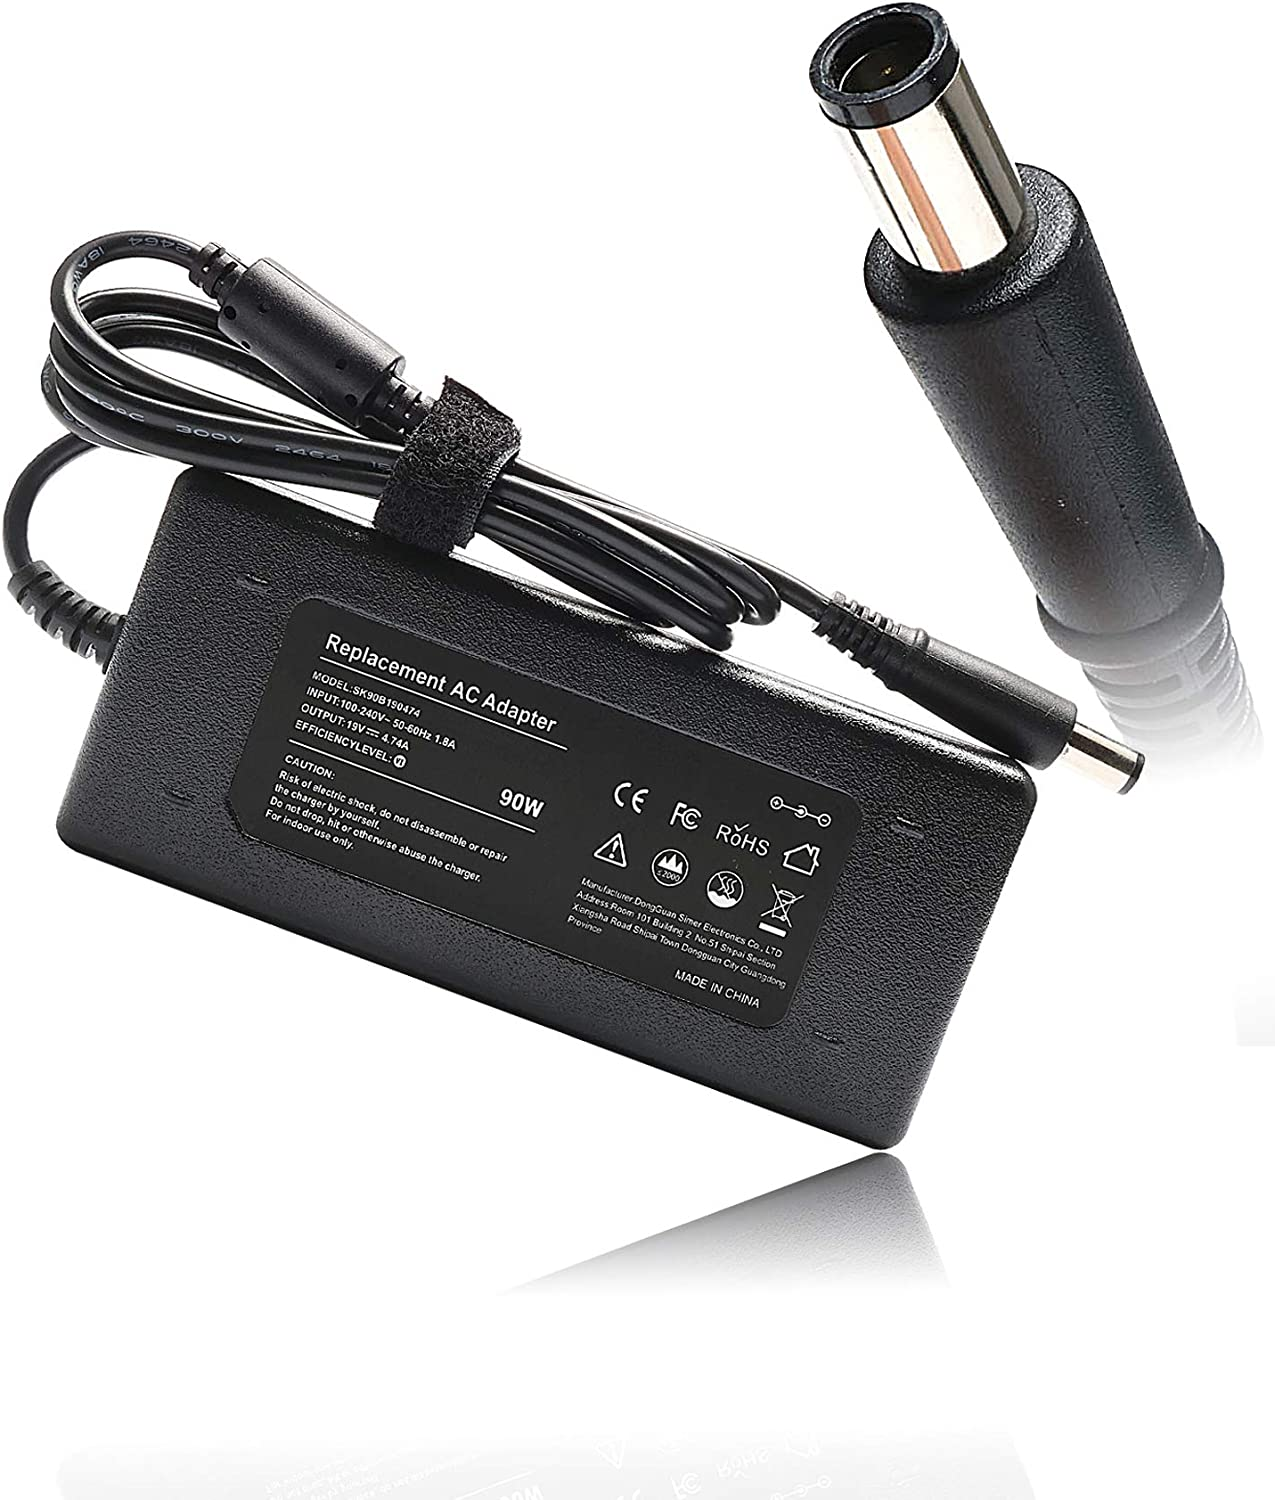 19V 4.74A 90W AC Adapter Laptop Charger for HP Pavilion dm1 dm3 dm4 dv3 dv4 dv5 dv6 dv7 m6 m7 Charger Entertainment Notebook PC Series Power Supply Cord Plug